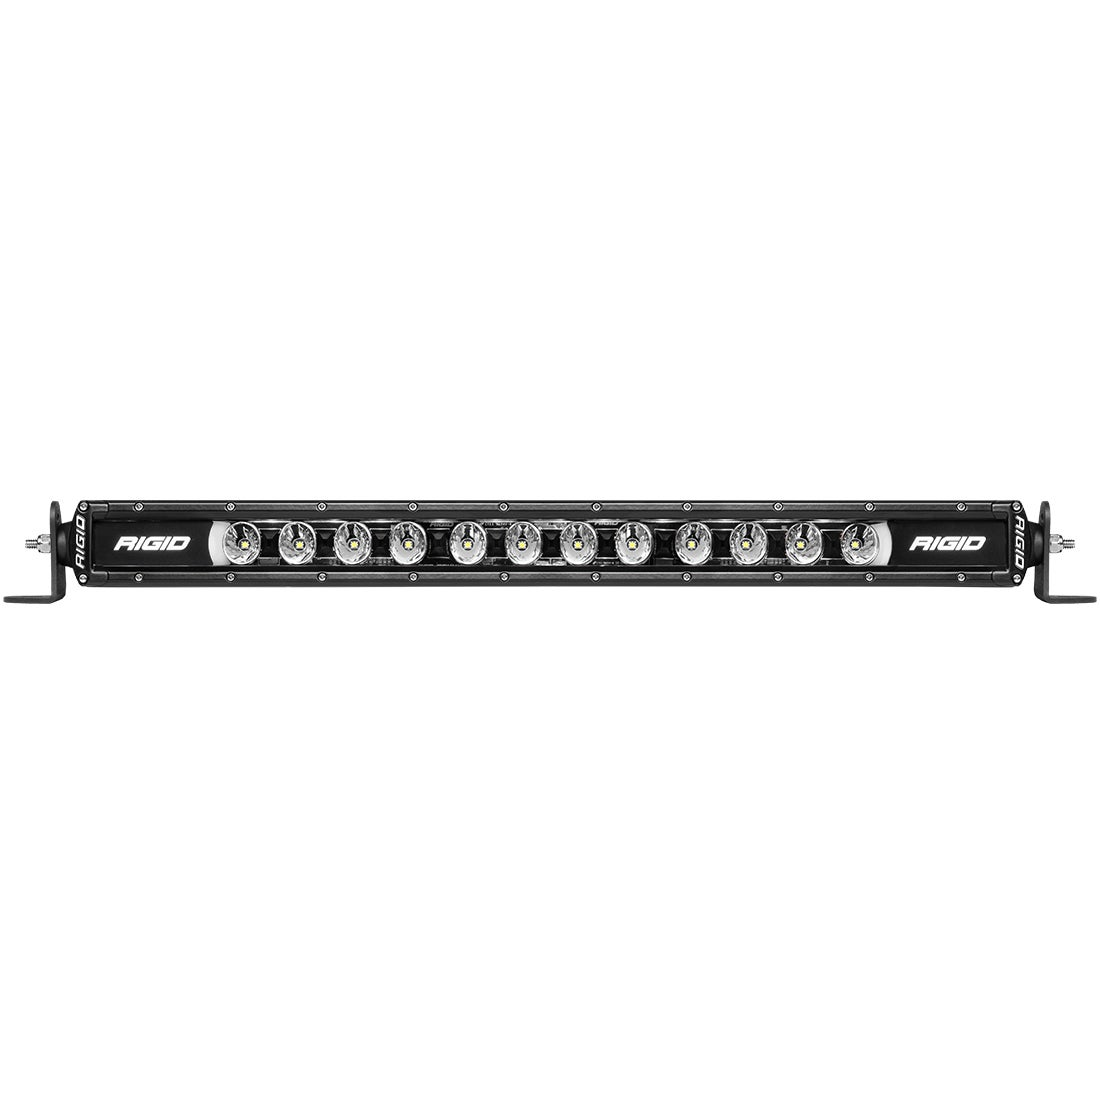 Radiance Plus SR-Series LED Lighting